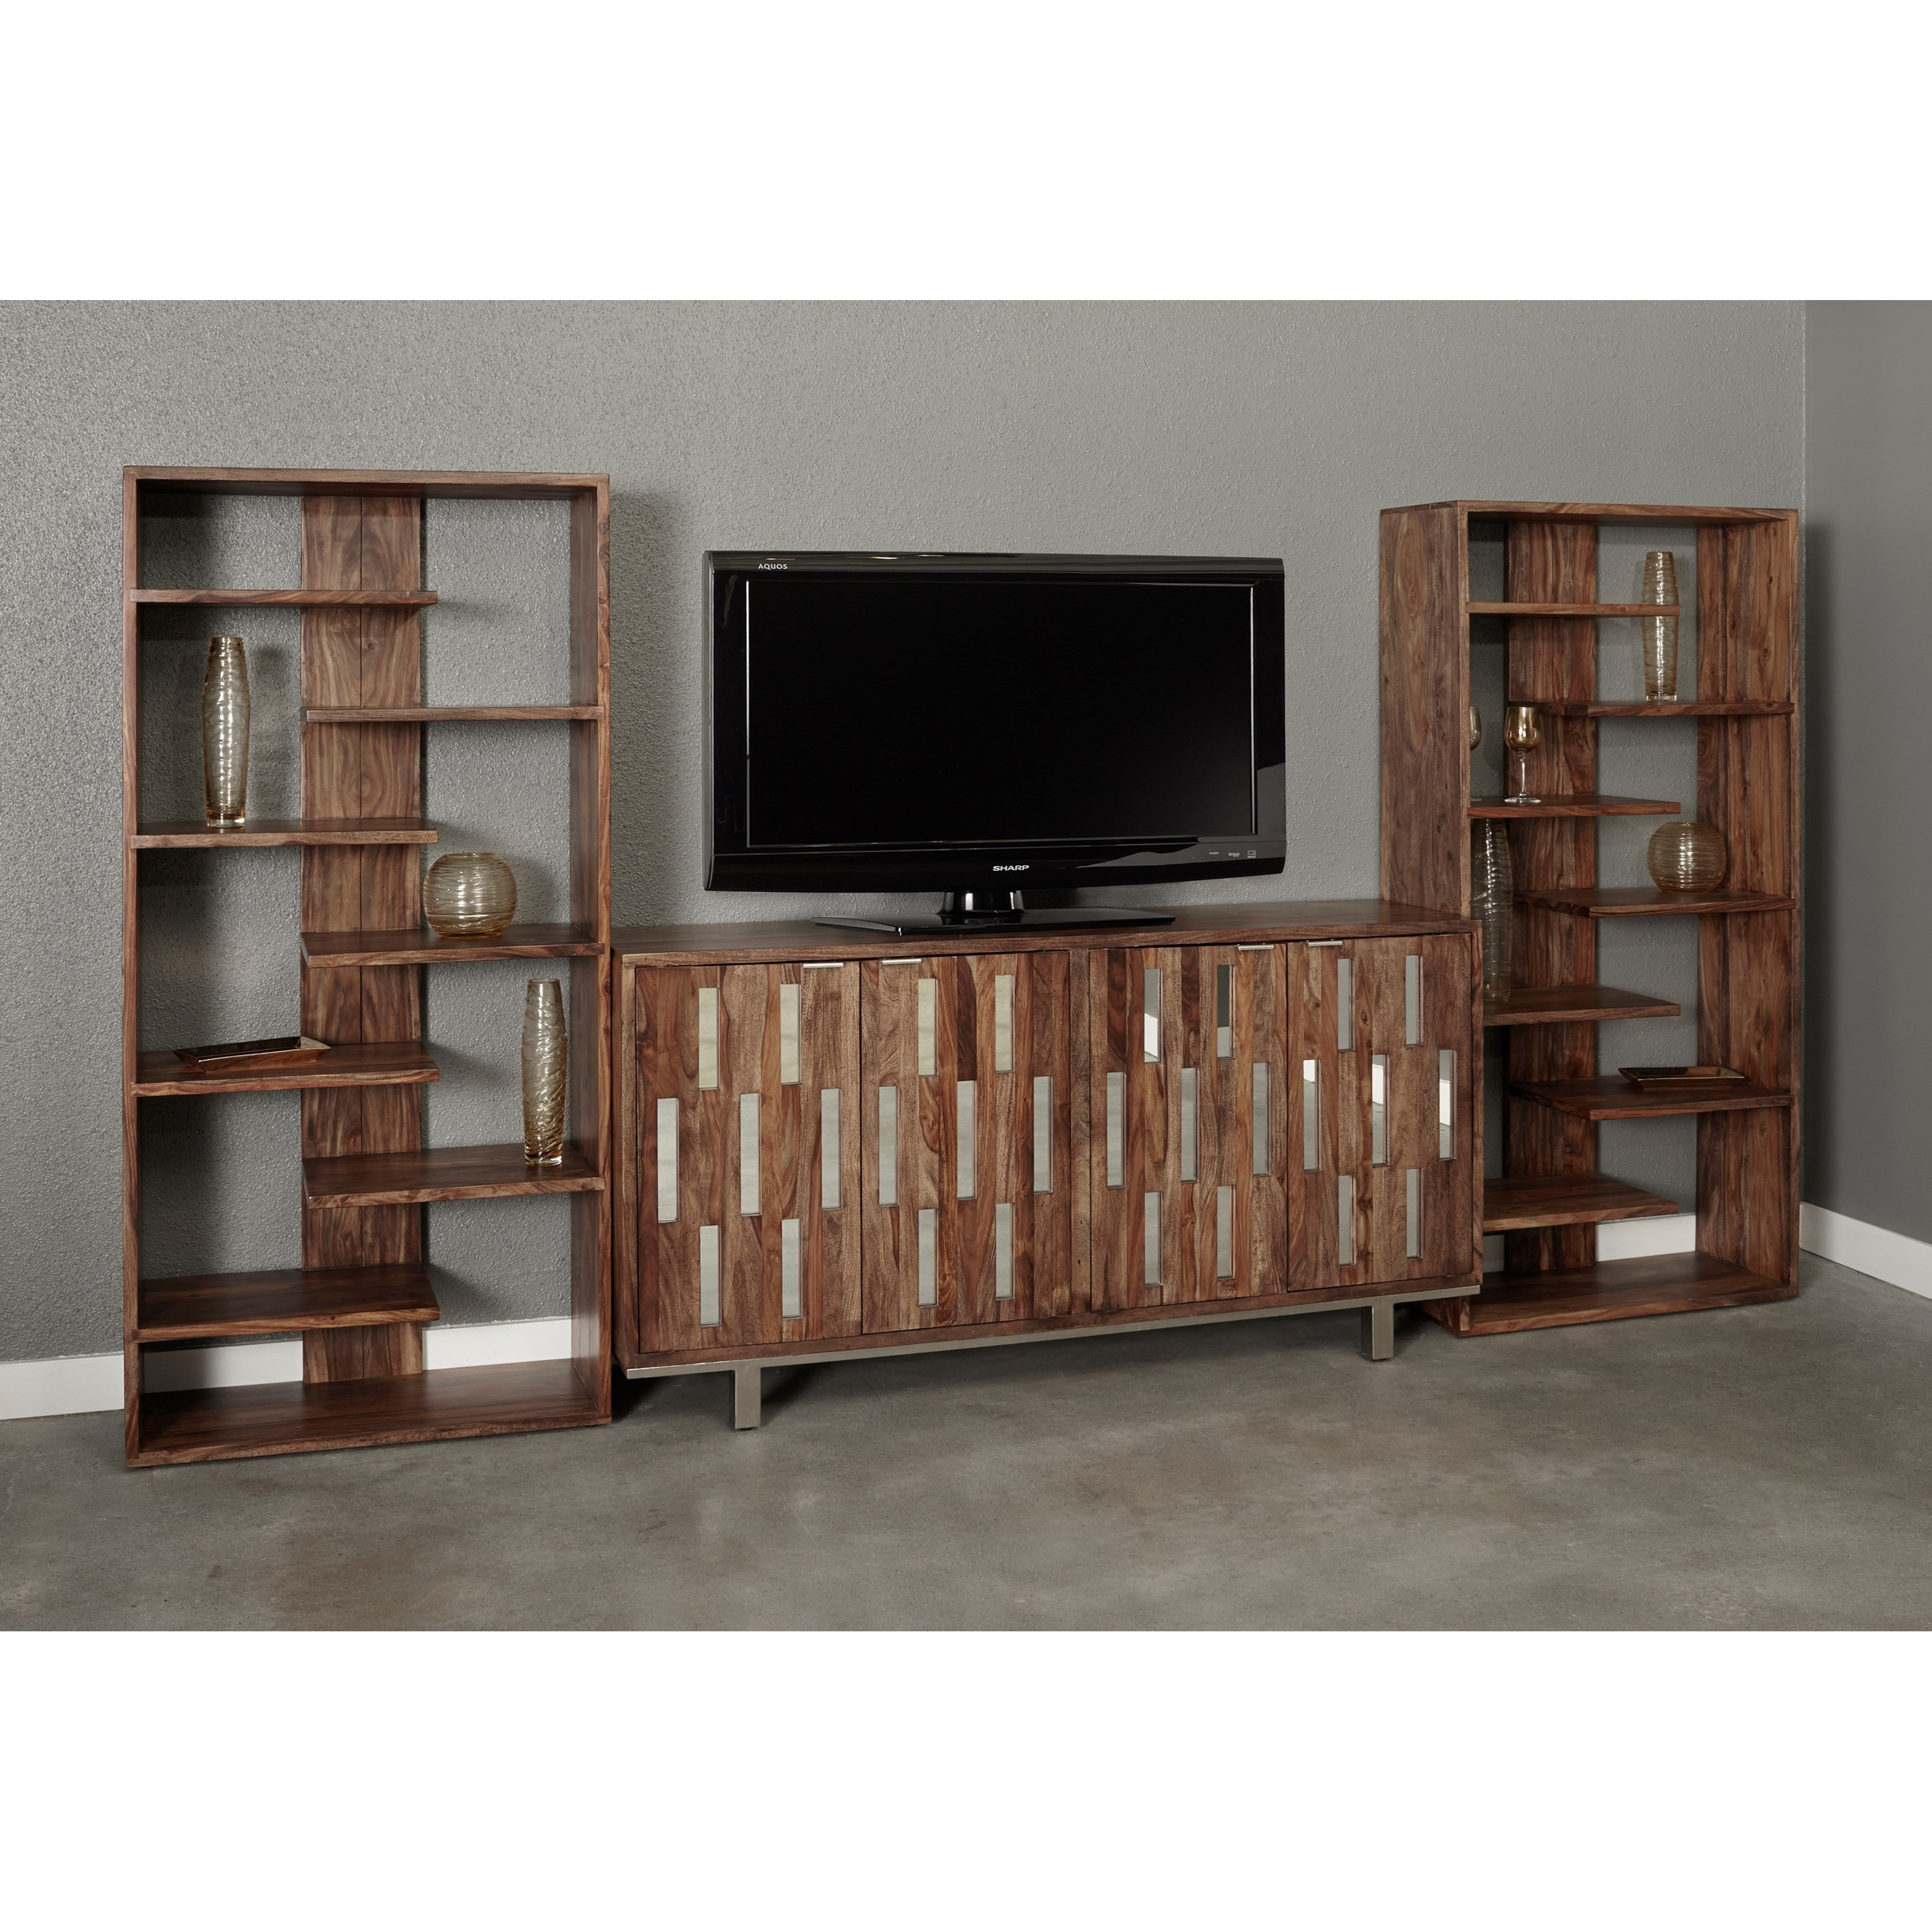 Brownstone TV Wall Unit by Coast to Coast Imports at Value City Furniture